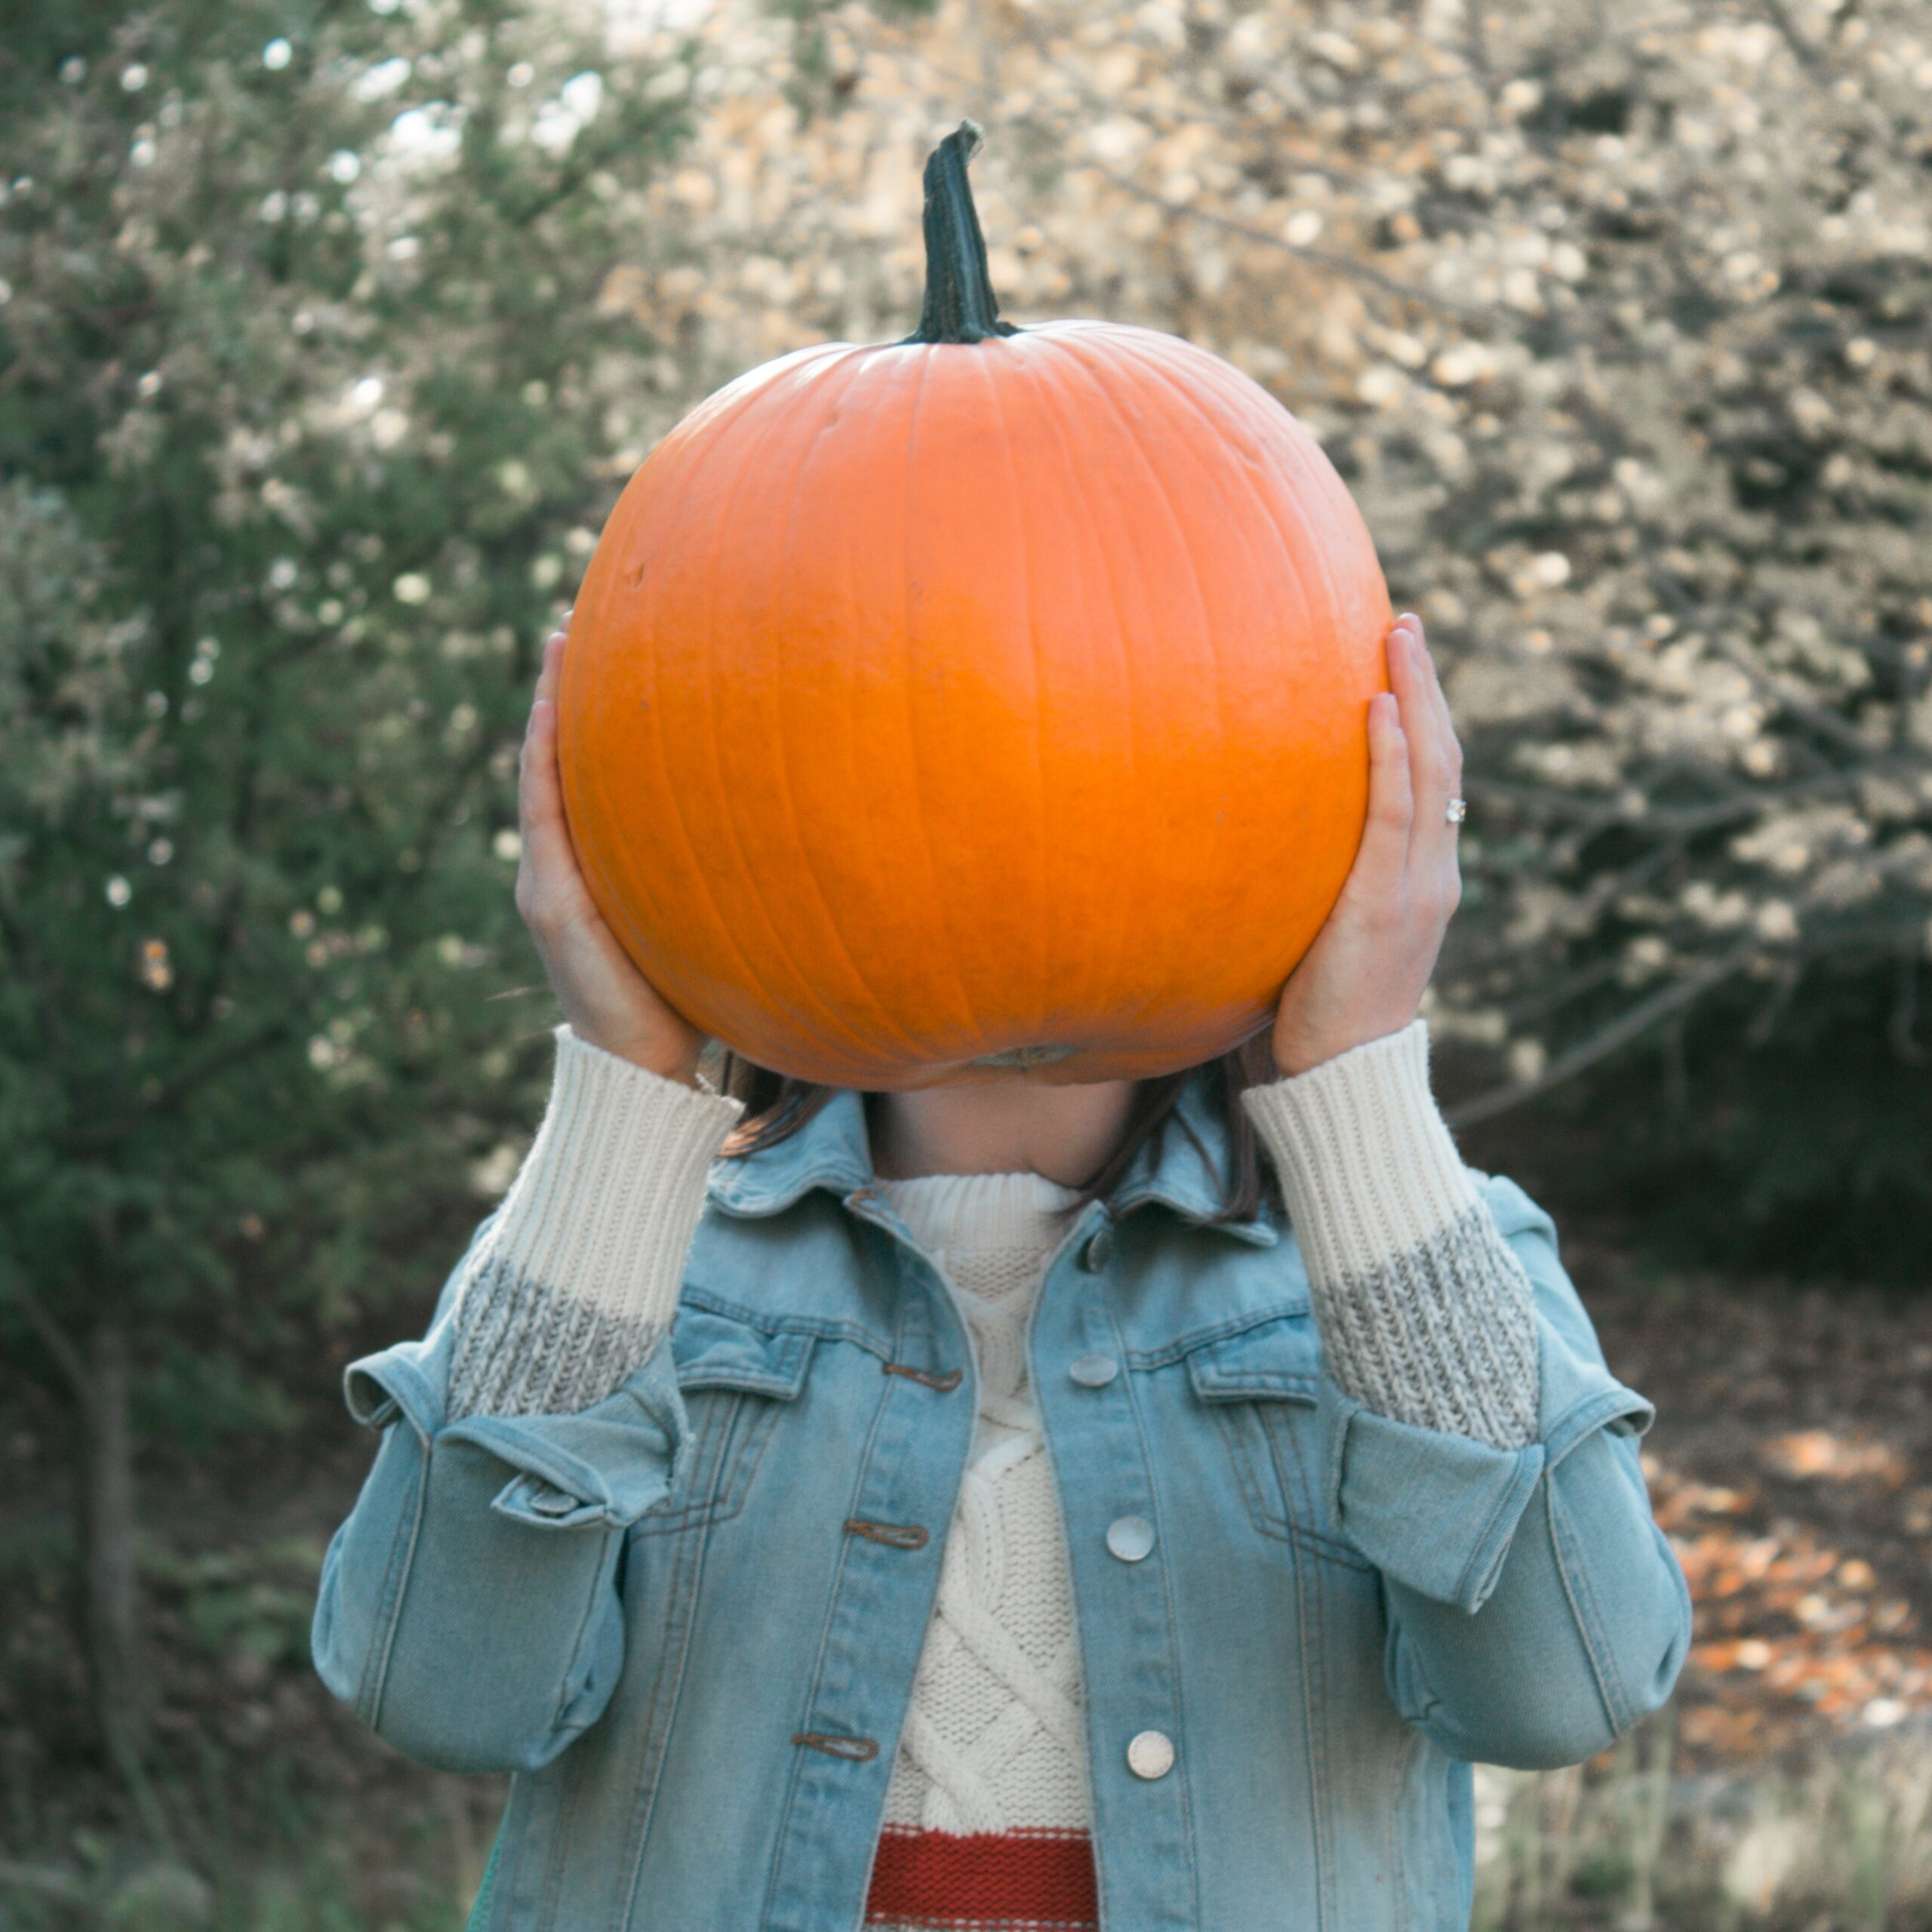 Chicago pumpkin fall activities and things to do this weekend olivia-kulbida